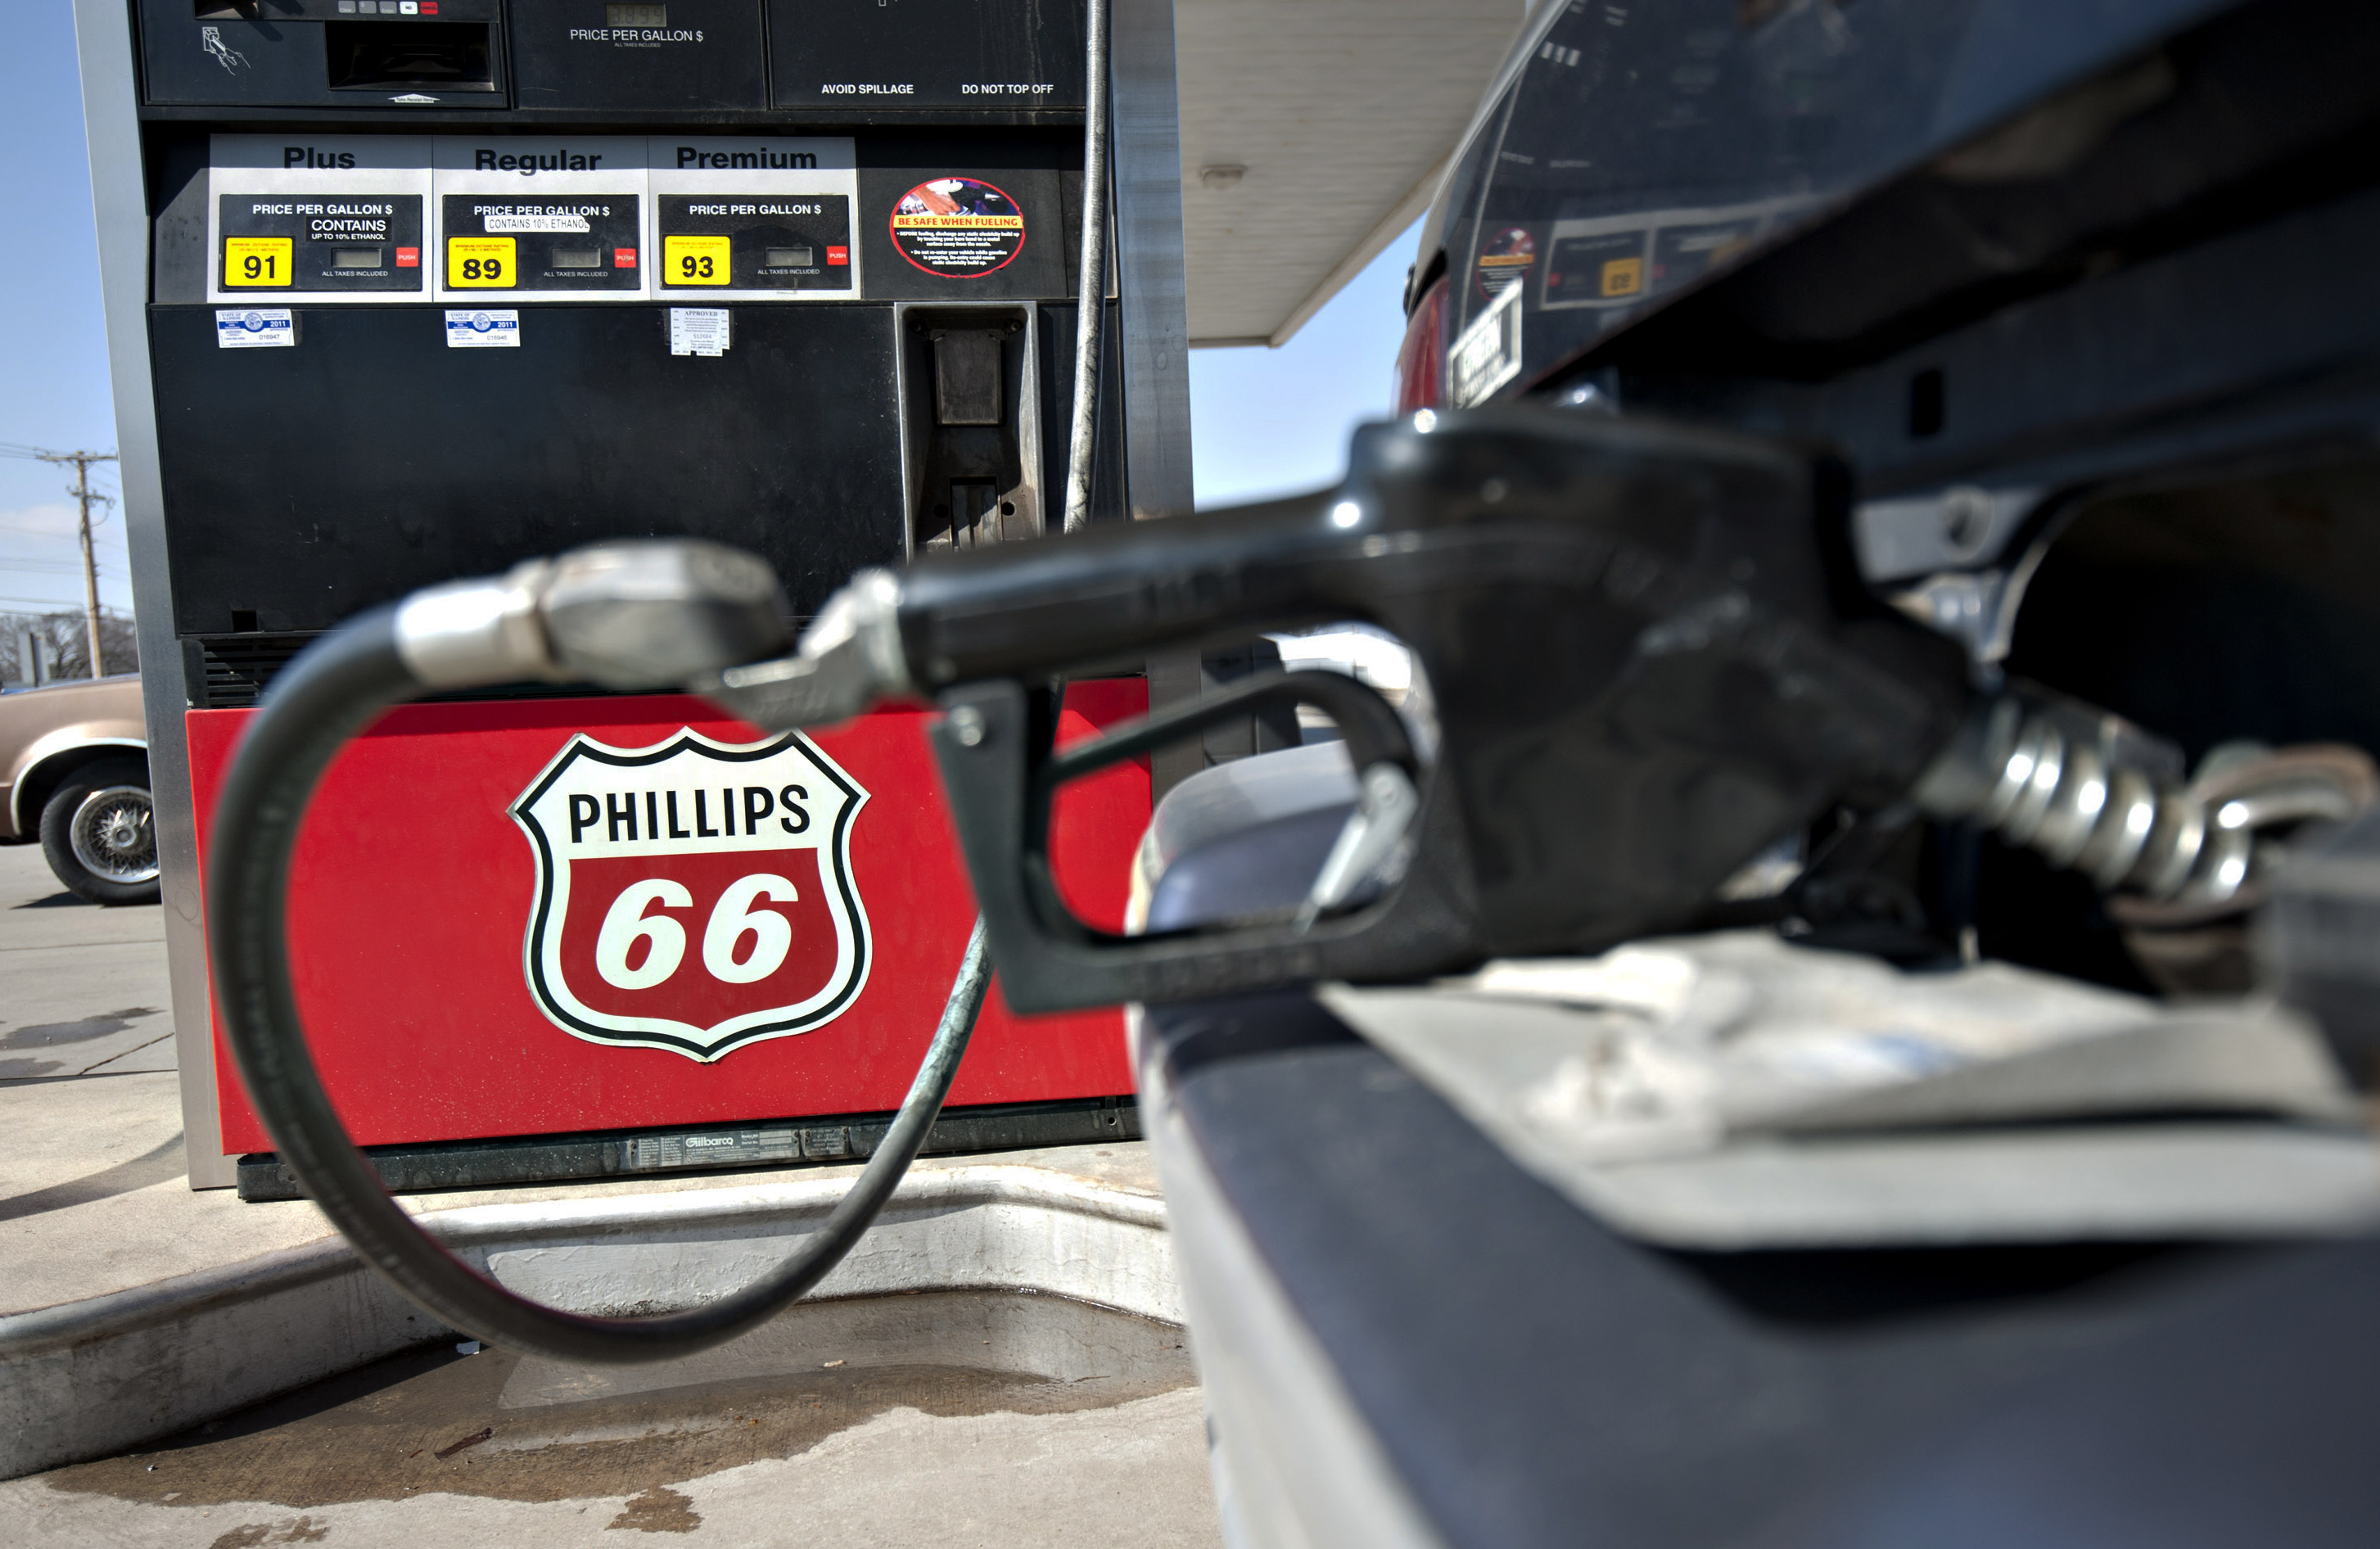 <strong>Phillips 66</strong> The refining company reported a 4% dip in revenue in 2013 — the first full-year results since it separated from the exploration division of ConocoPhillips in 2012. Results were hurt by lower average prices for crude oil and petroleum products. Phillips 66 is planning to spend about 40% more on capital expenditures in 2014 compared to the prior year, as the company invests in its midstream and chemicals segments to capitalize on North America's energy renaissance.